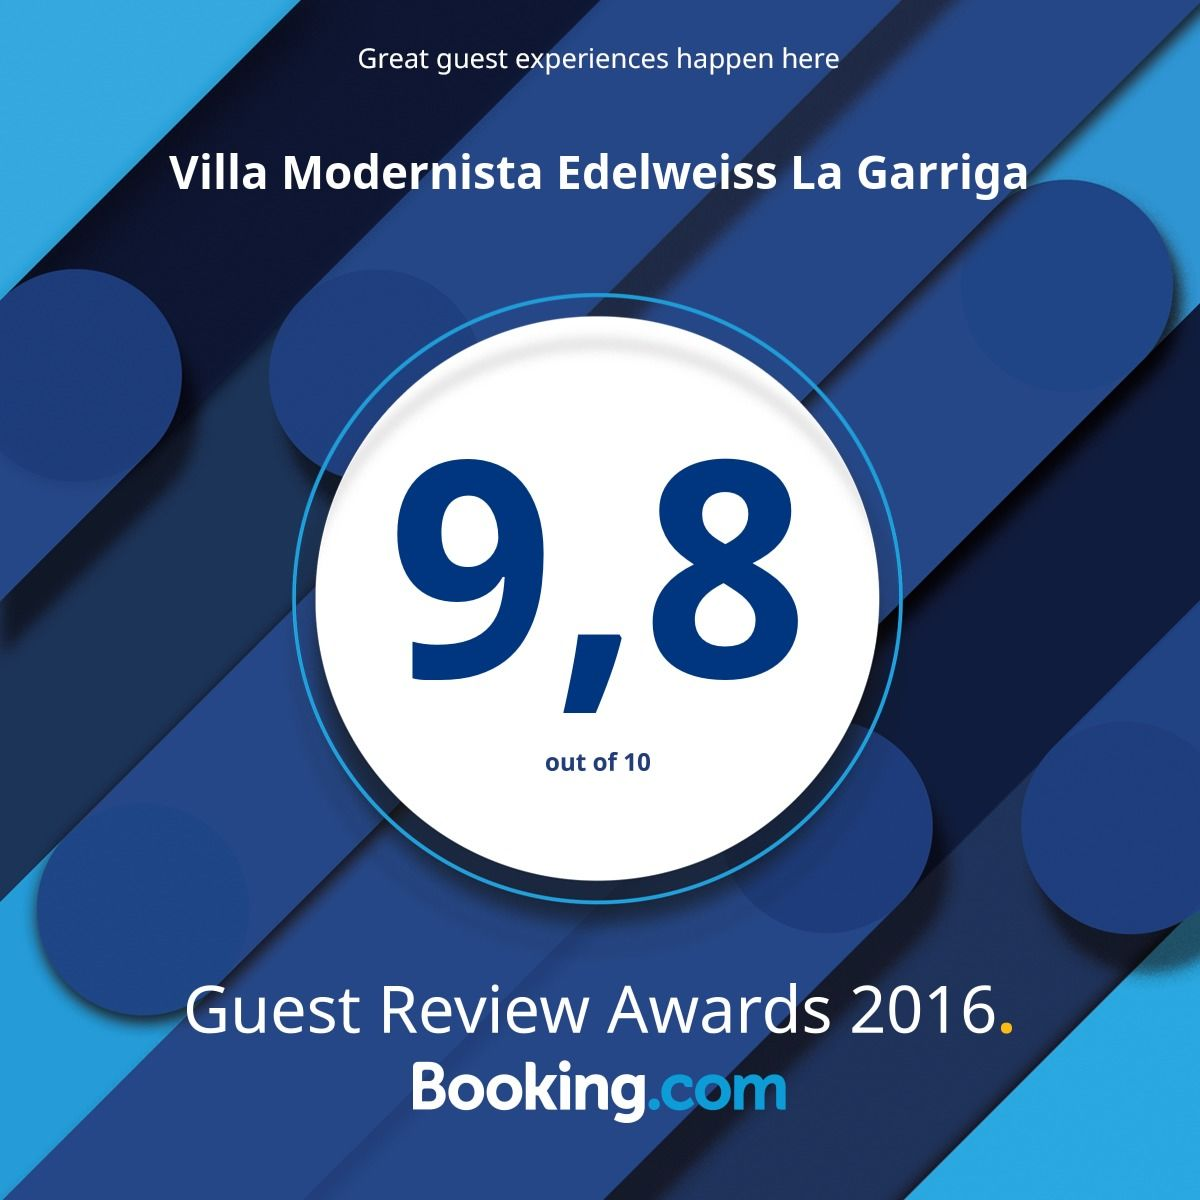 Booking Award